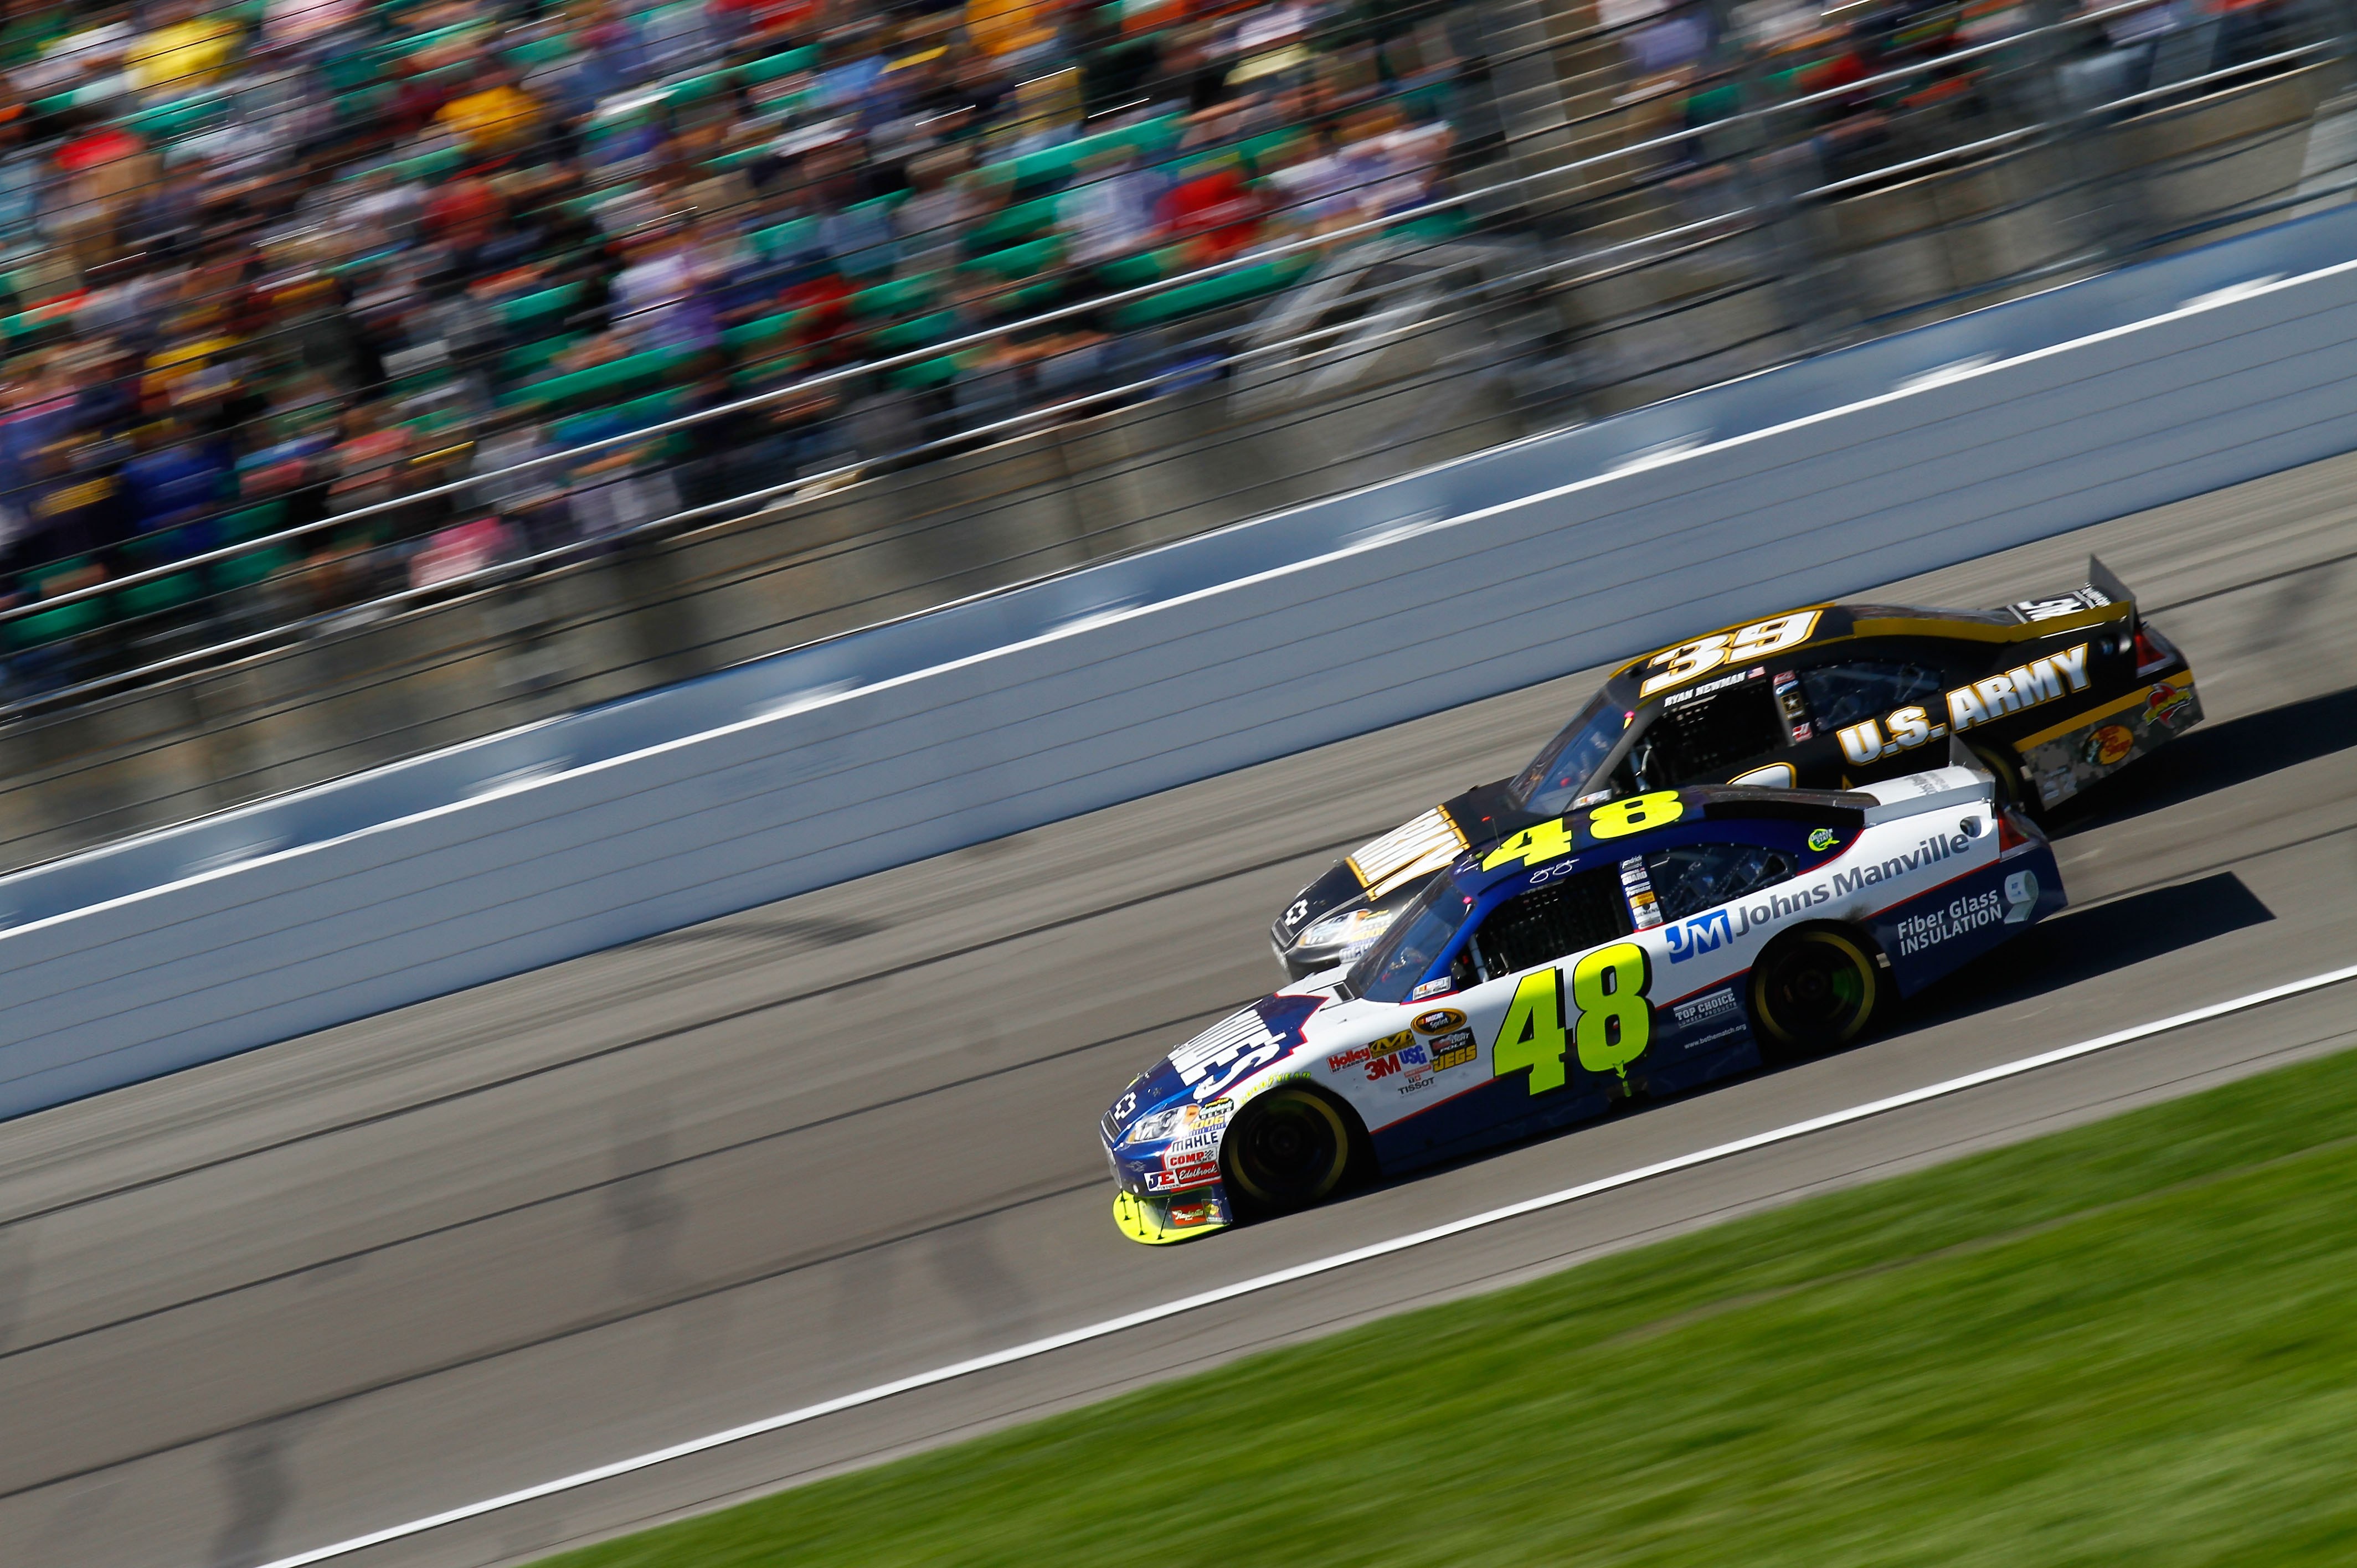 KANSAS CITY, KS - OCTOBER 03:  Jimmie Johnson, driver of the #48 Lowe's Chevrolet, races Ryan Newman, driver of the #39 U.S. Army Chevrolet, during the NASCAR Sprint Cup Series Price Chopper 400 on October 3, 2010 in Kansas City, Kansas.  (Photo by Jason